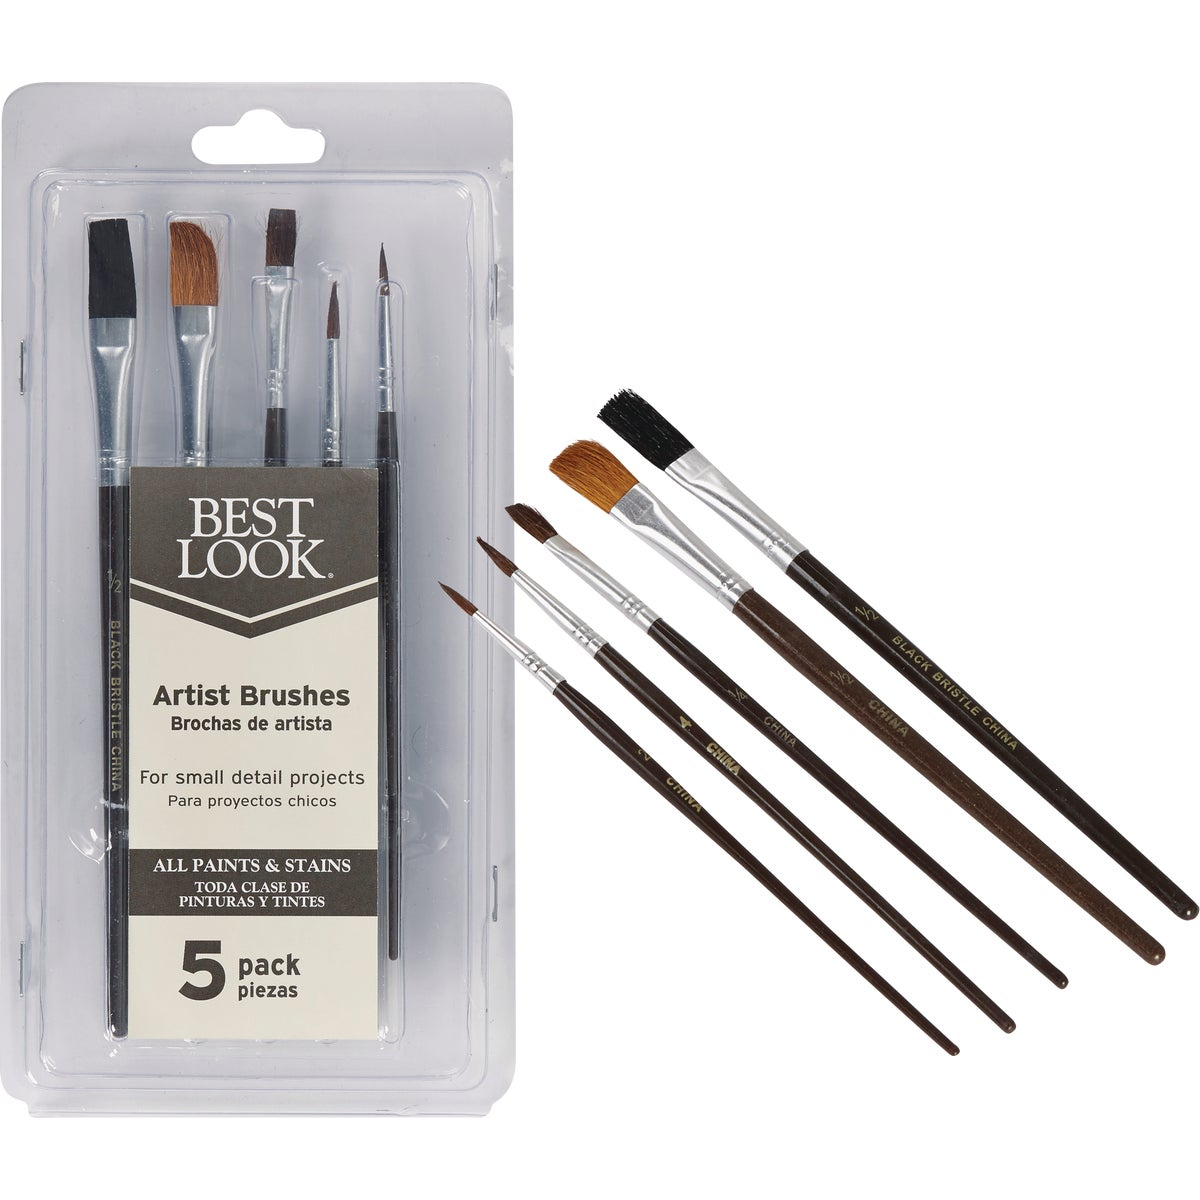 5PC ARTIST BRUSH SET - 1769598 by Shur Line